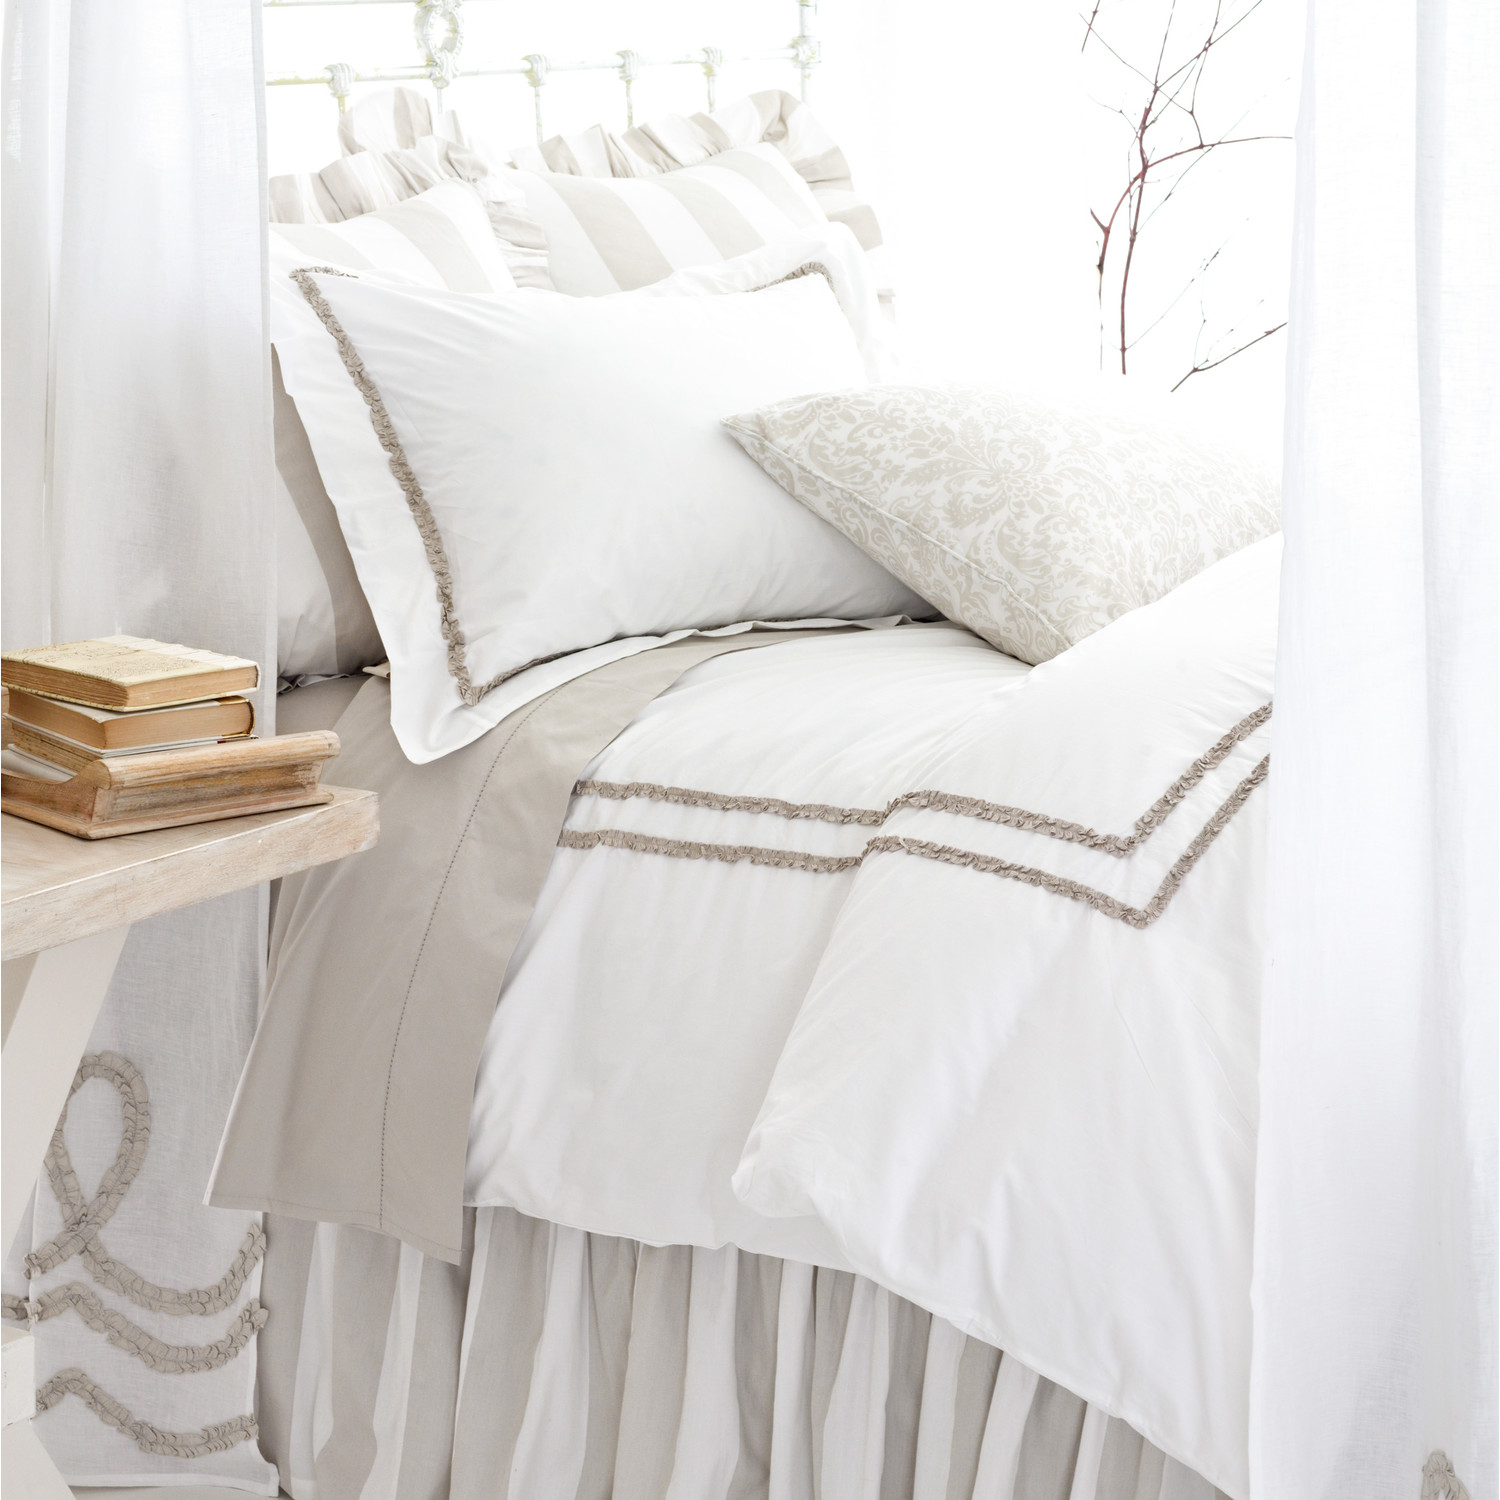 lovely pine cone hill ruched cover in white and gray for bedding ideas